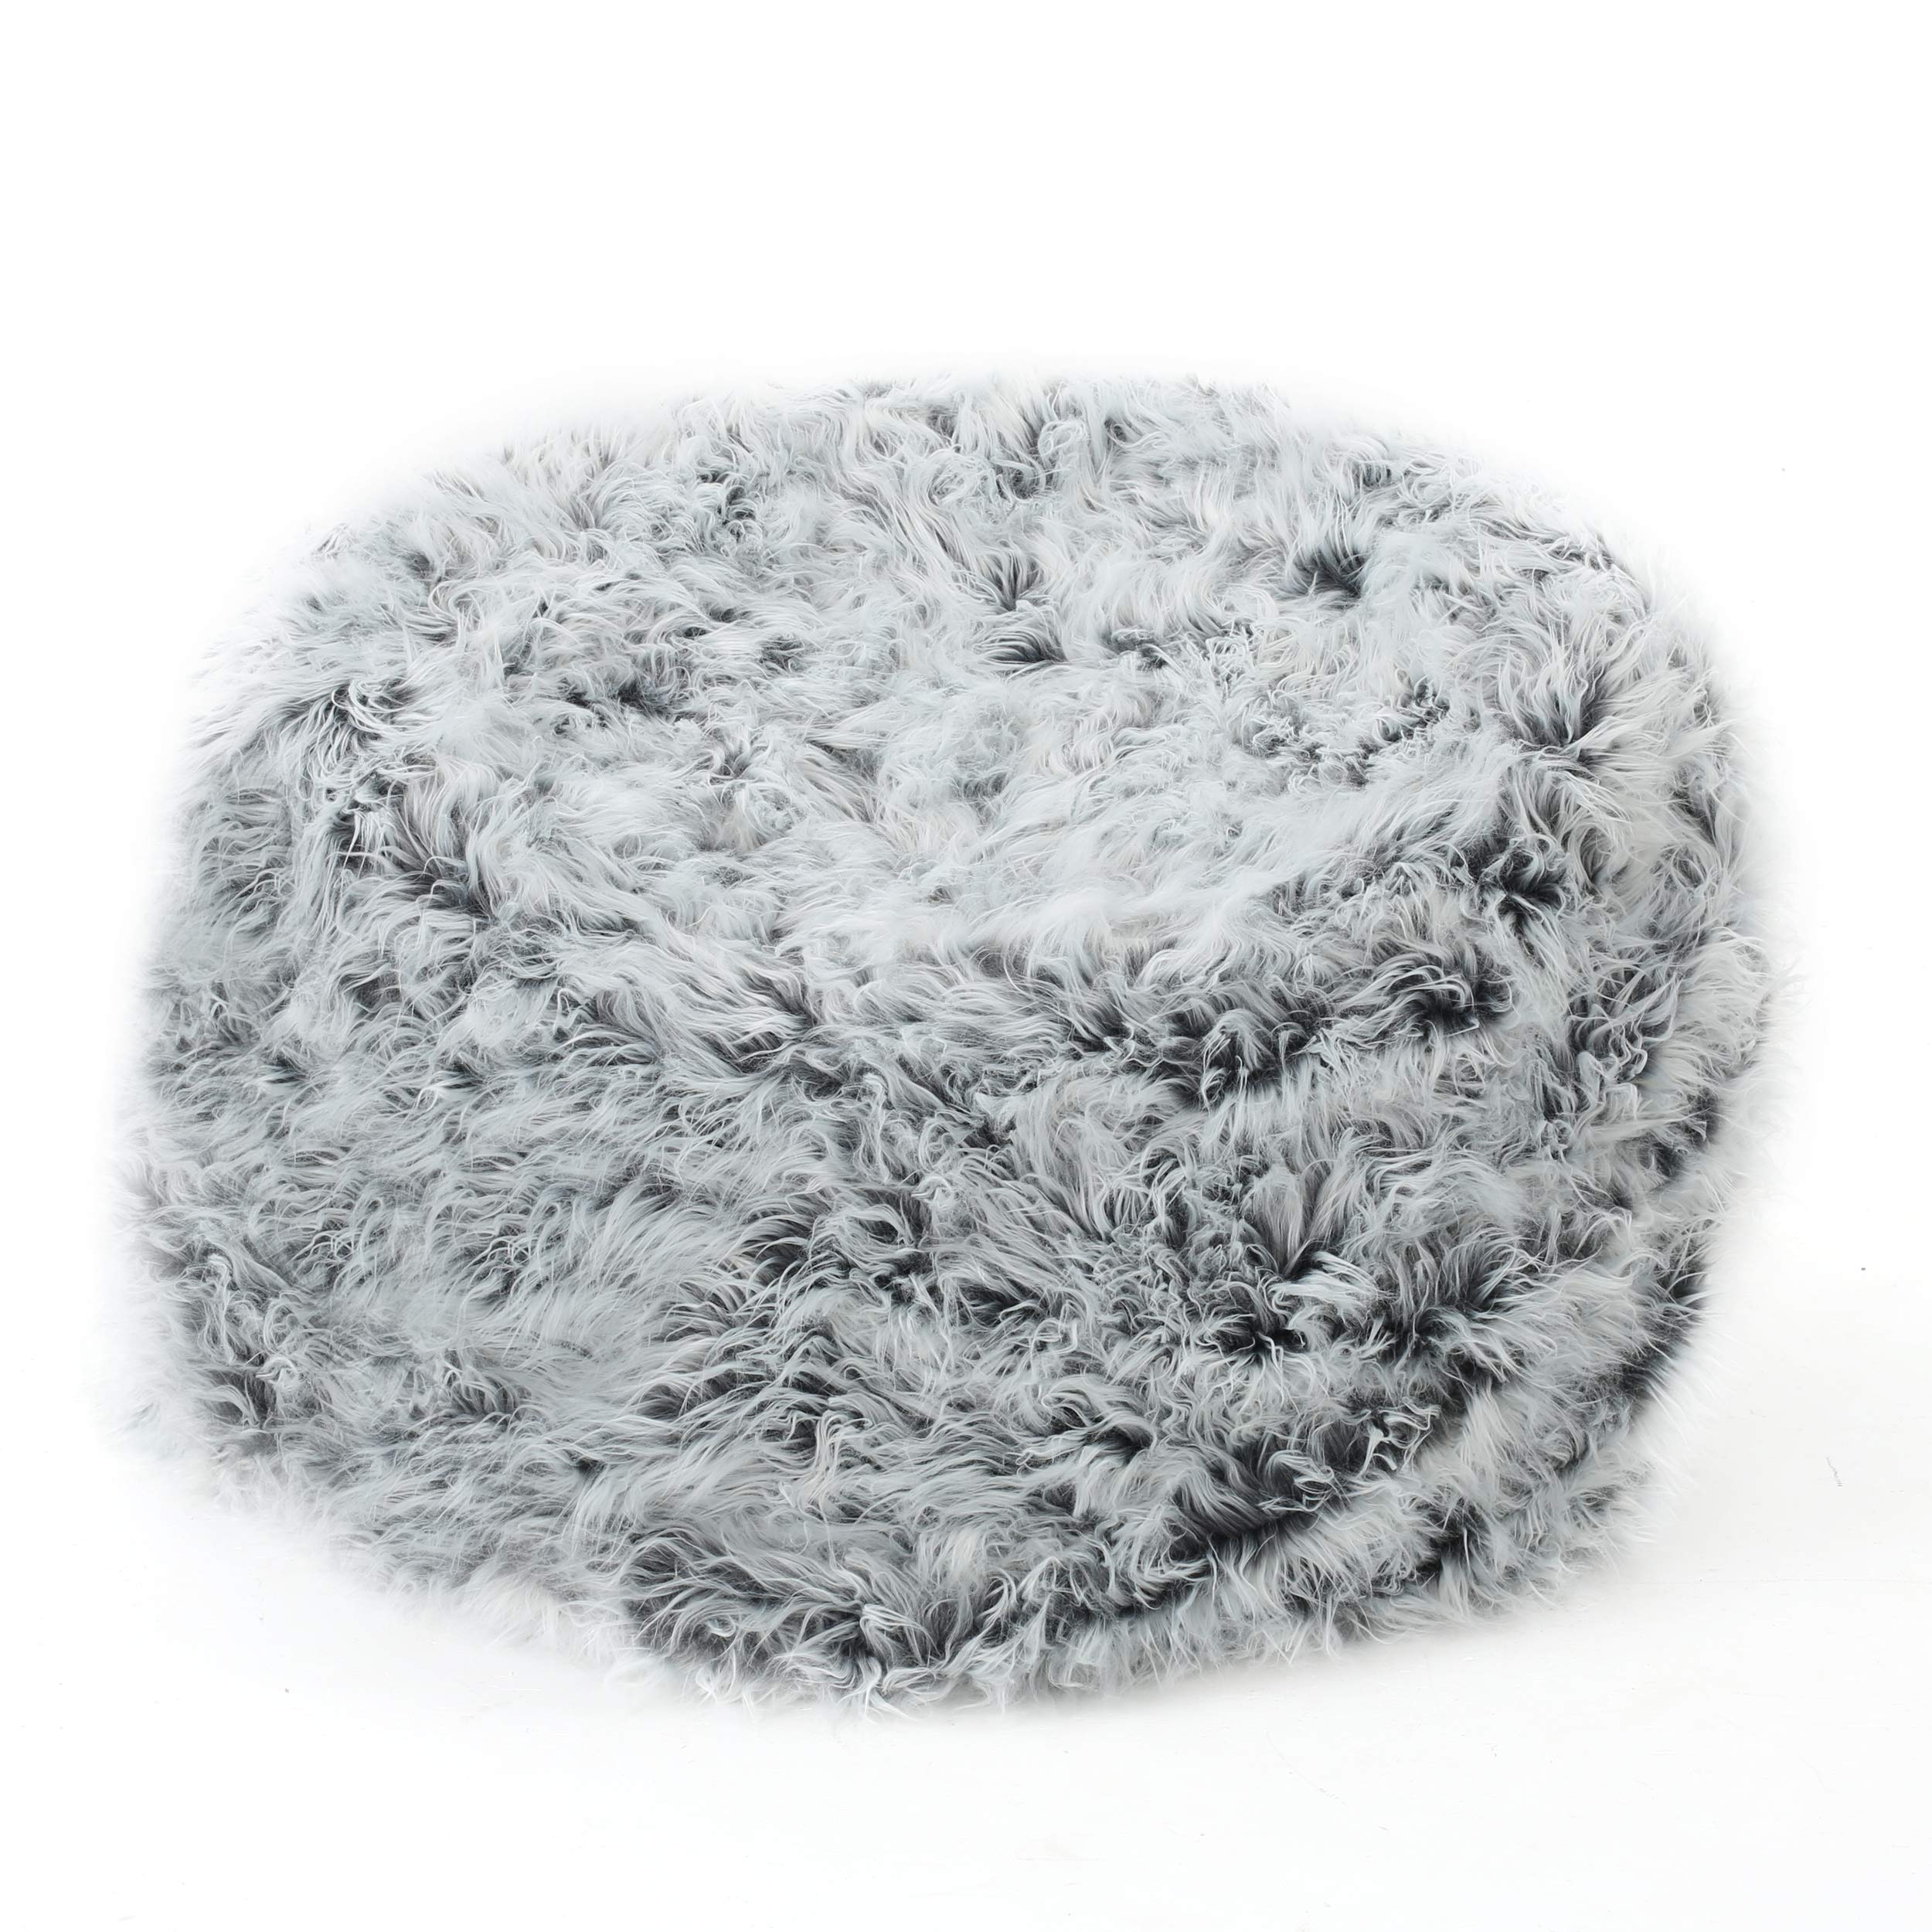 Christopher Knight Home 301706 Lycus Faux Fur Bean Bag Chair (Silver Grey) by Christopher Knight Home